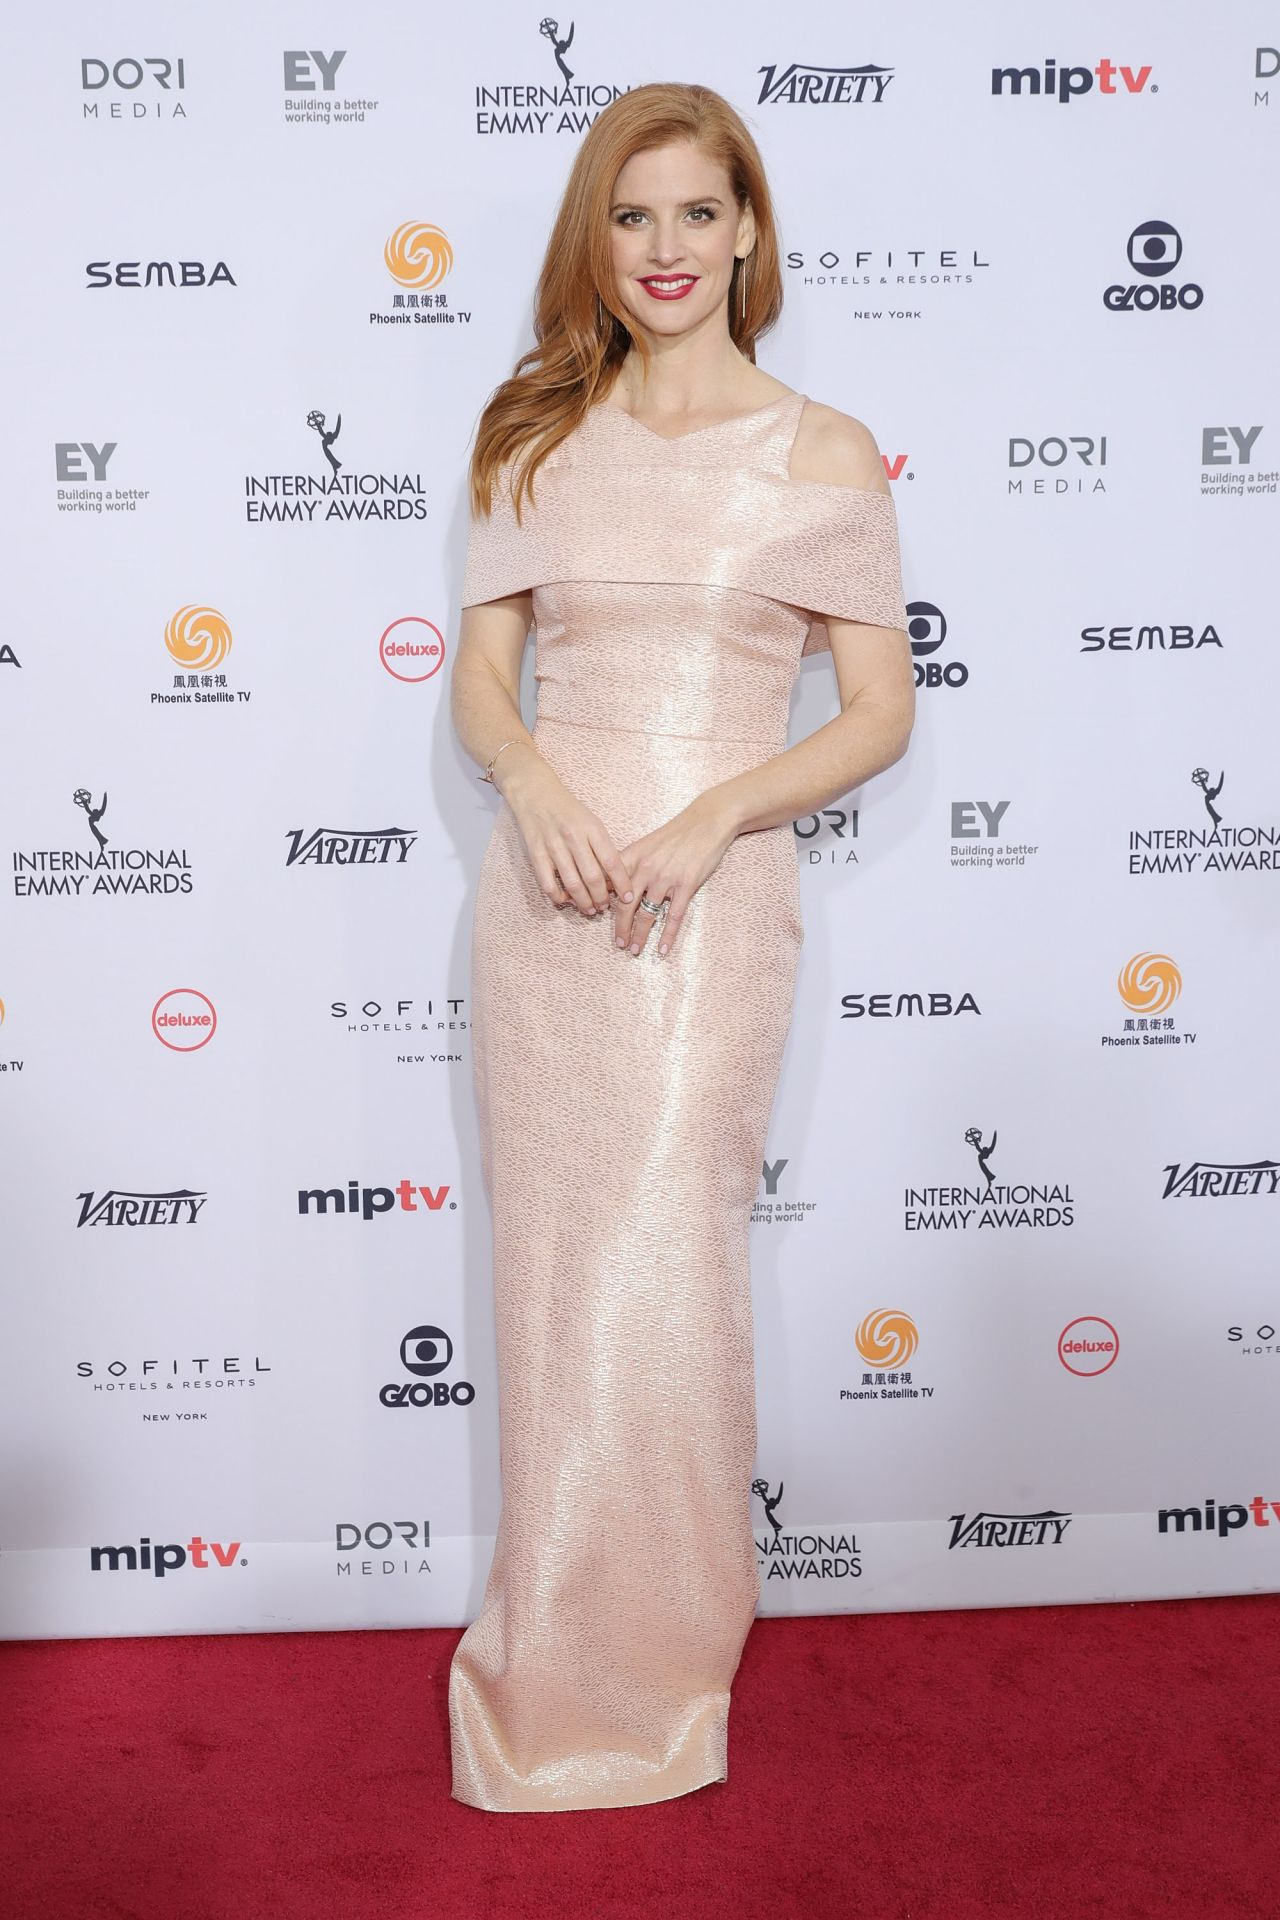 sarah-rafferty-international-emmy-awards-2016-in-new-york-city-2